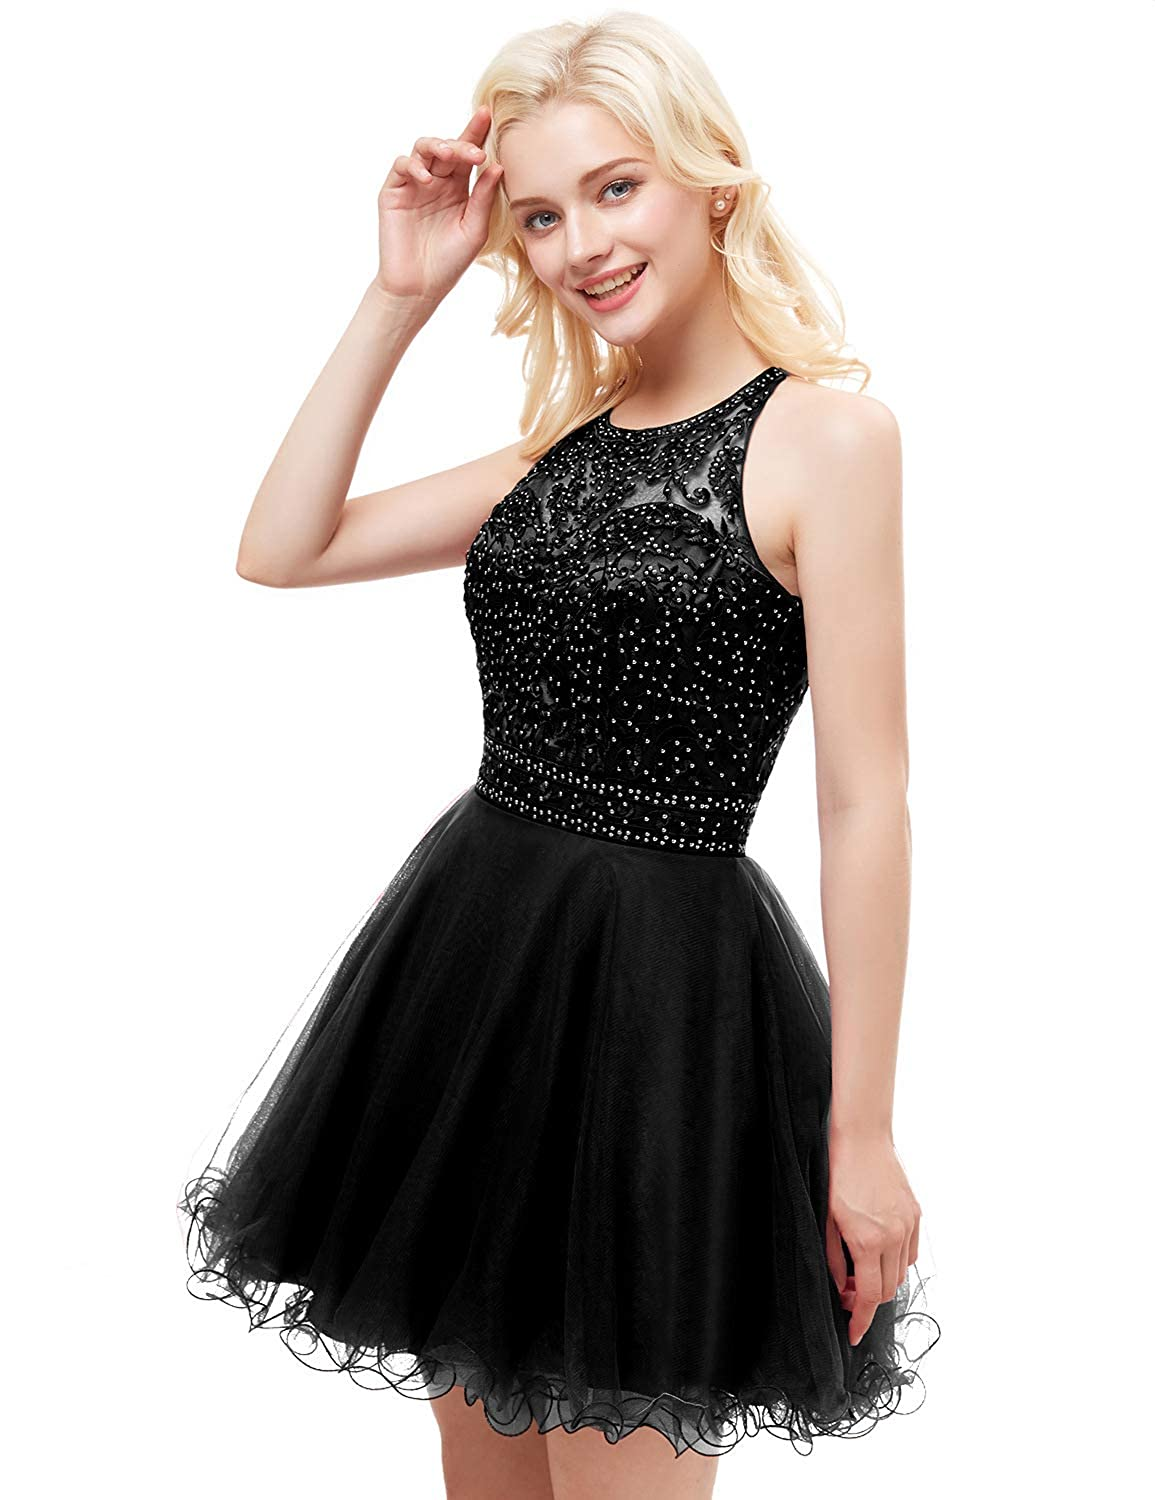 00 Black Vimans Women's Short Tulle Homecoming Dresses 2018 Knee Length Lace Prom Gowns Dress448